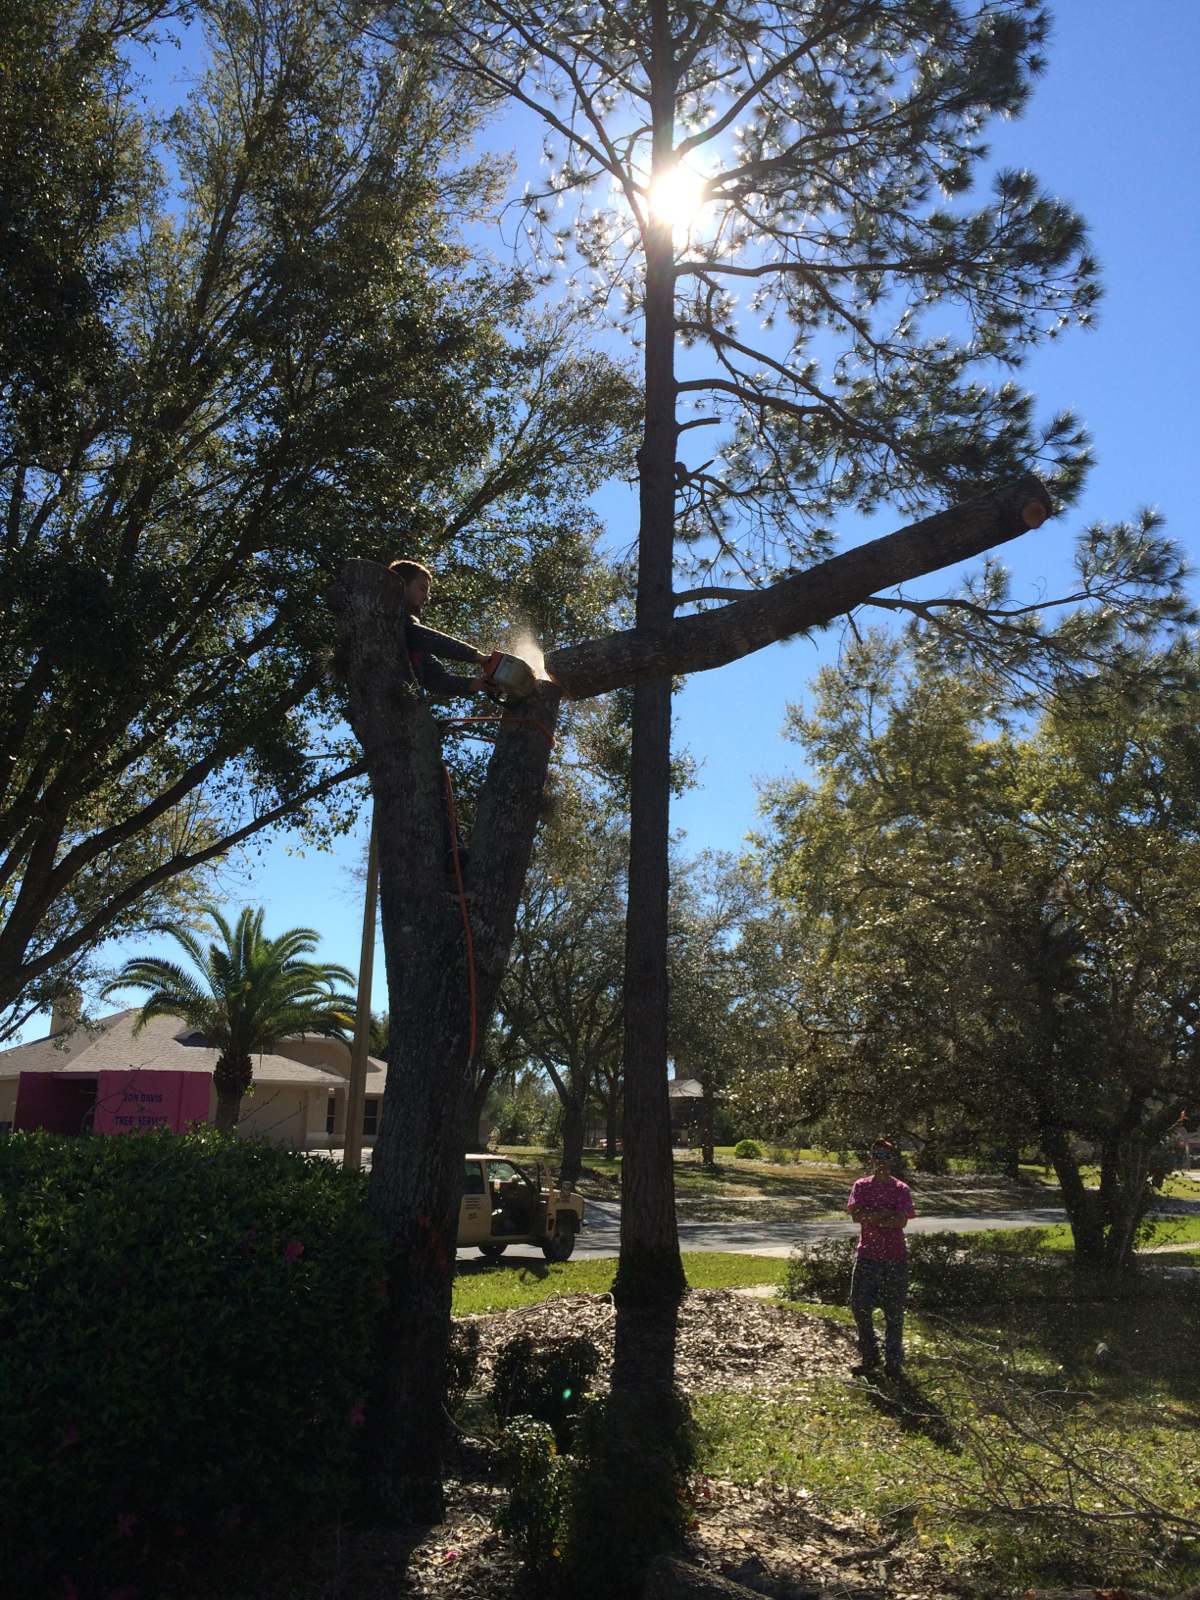 How Confident Are You In Your Tree Service